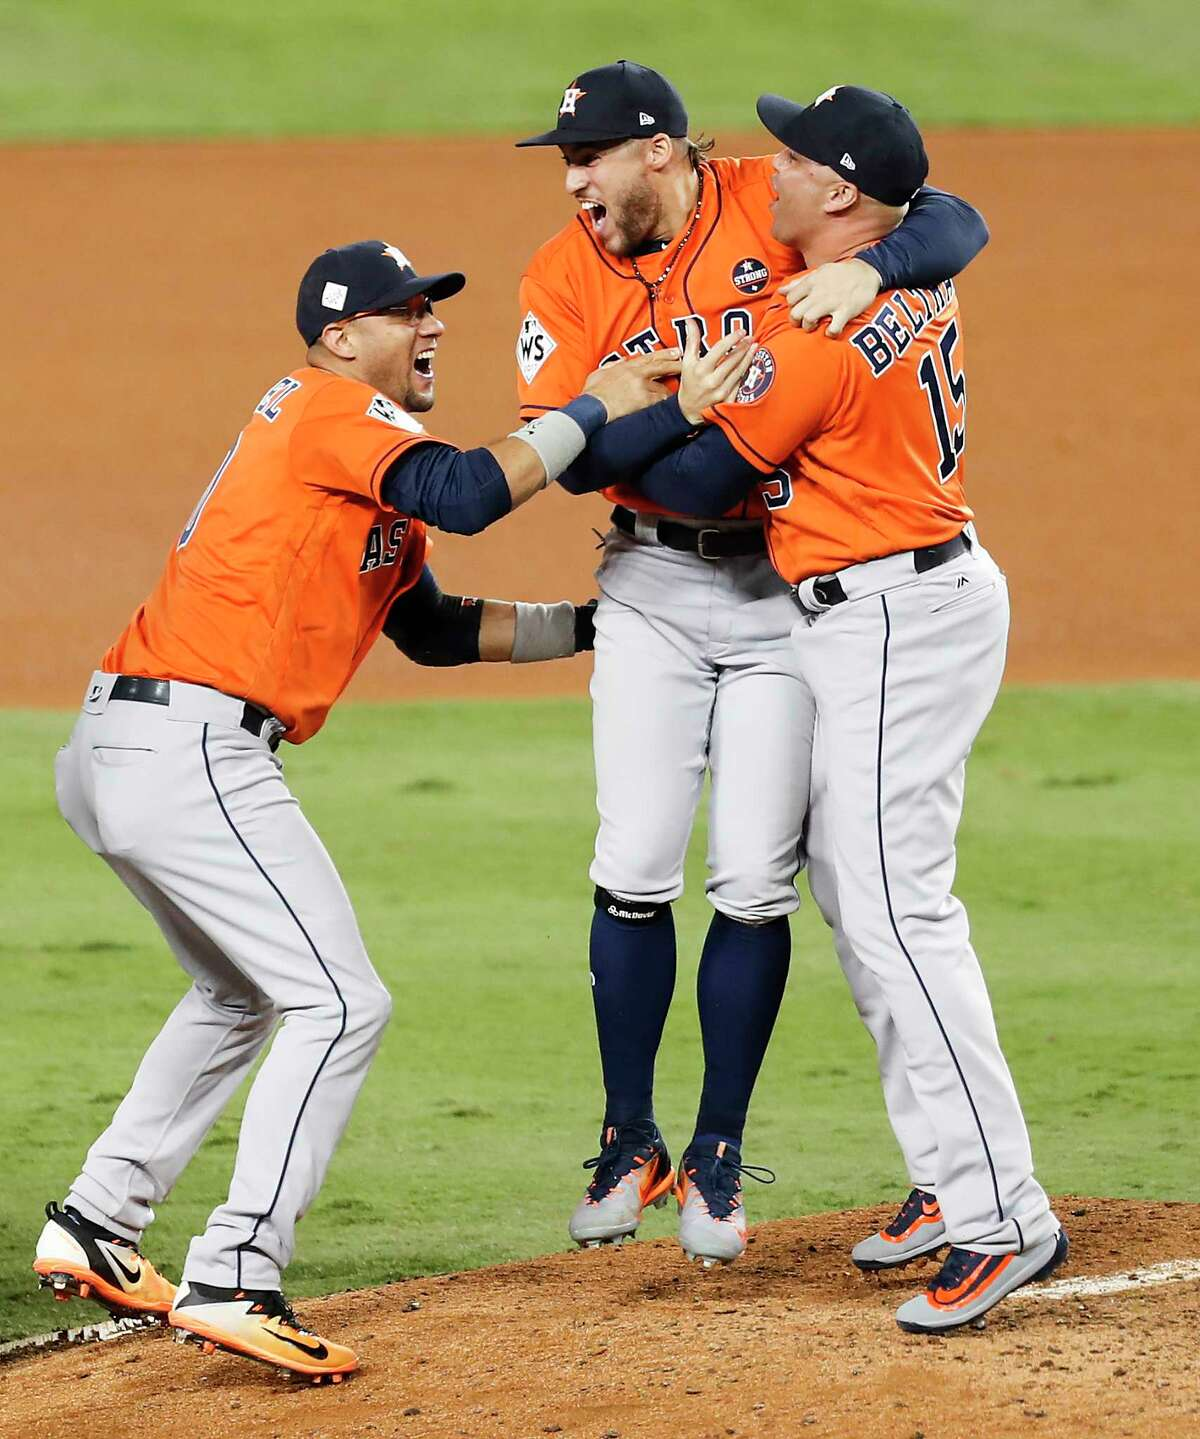 Carlos Beltran, right, celebrates with teammates after the Astros beat the Los Angeles Dodgers 5-1 in Game 7 of the World Series at Dodger Stadium on Wednesday night. For Beltran, a 20-year major league veteran, it was his first World Series victory.